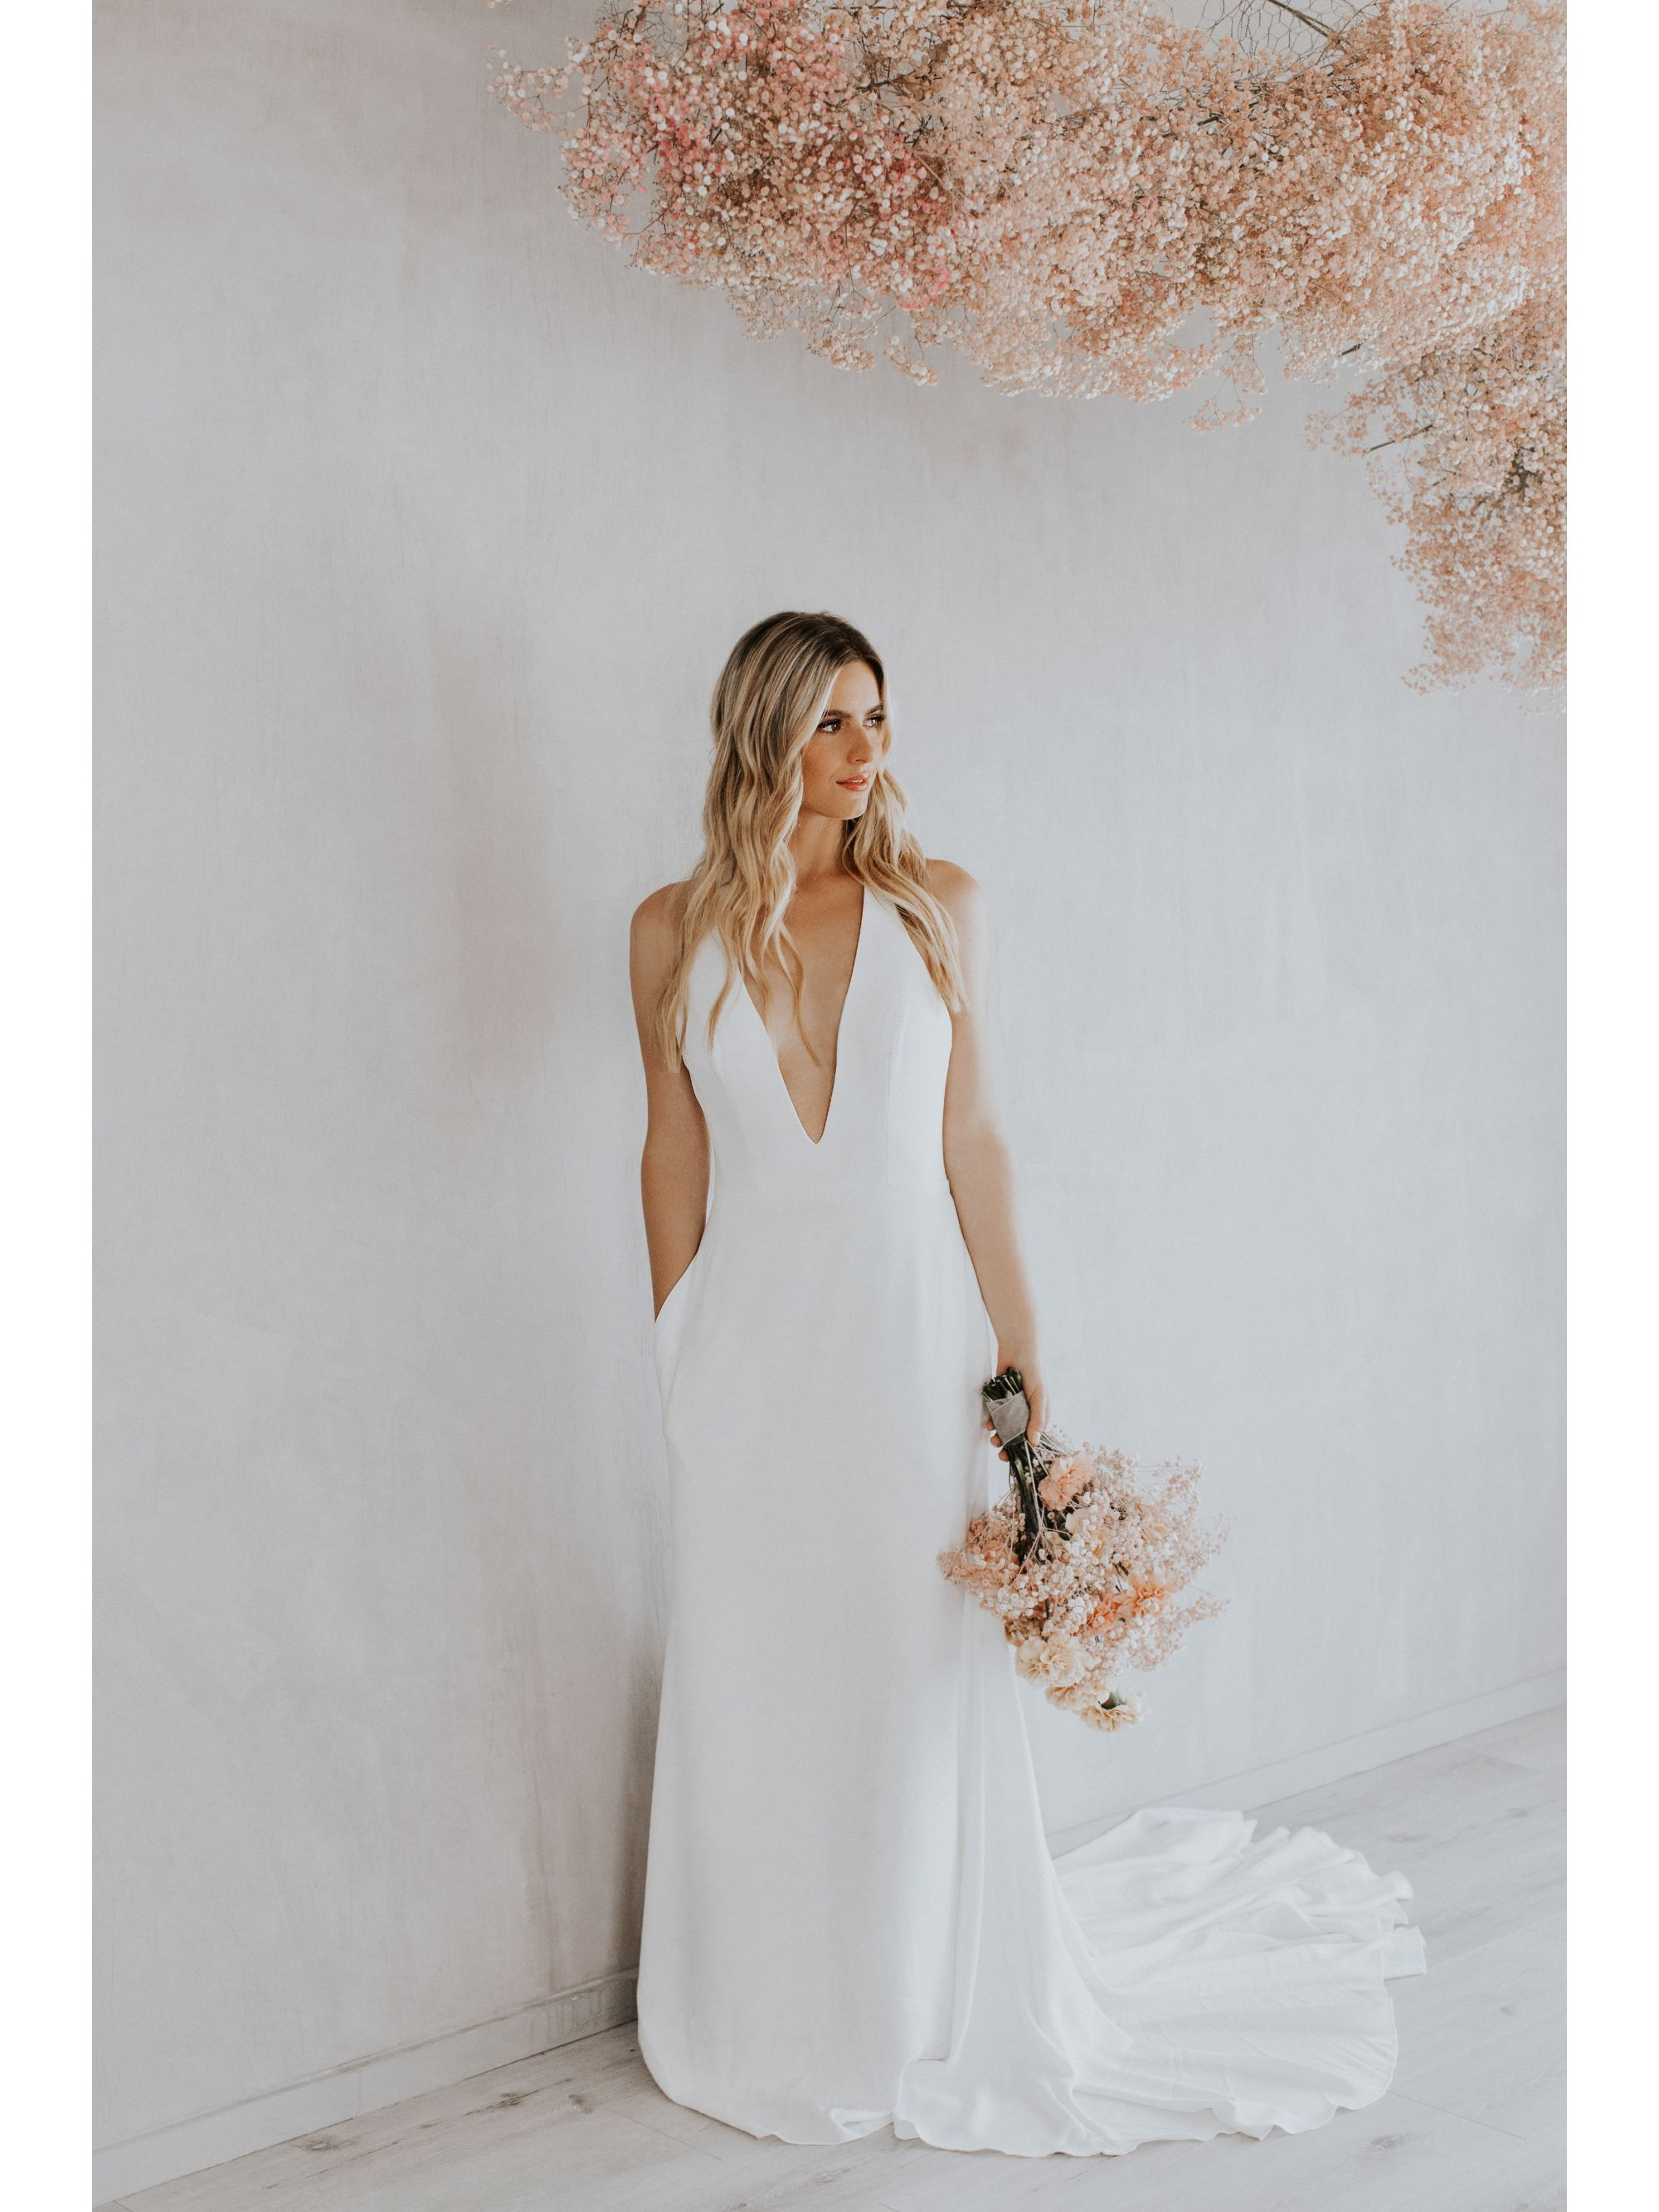 Bridal Gown-Romantic Wedding Gown-Attractive Wedding Gown.Lovely Wedding Gowns.Simple Classic Wedding Gowns,Soft Crepe Fabric,Side Pockets Wedding Gown,Bridal Gown, Wedding Gown, Ballroom Wedding Gown, Lace Wedding Gown, Simple Wedding Gown, Royal Wedding